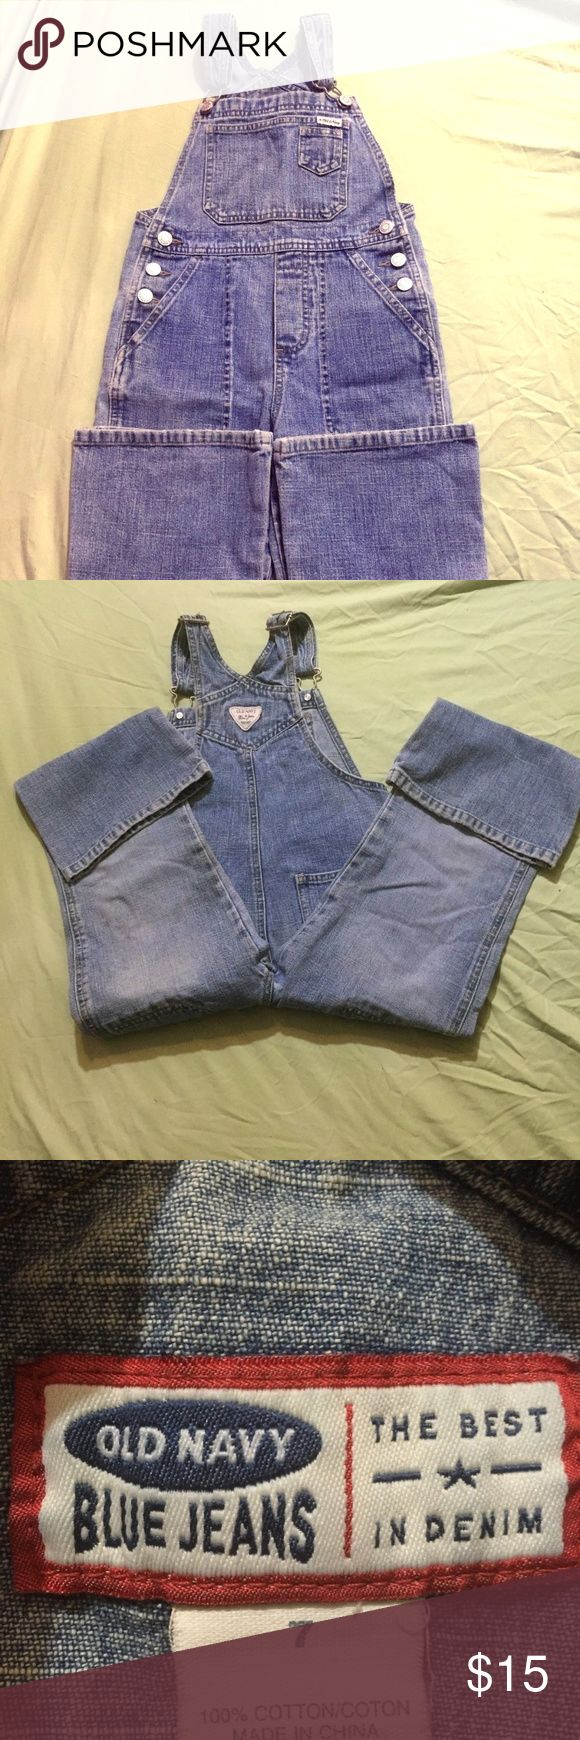 Old Navy Overalls (004) These Old Navy size 7 are adorable! They are used but are still very nice! Old Navy Bottoms Overalls